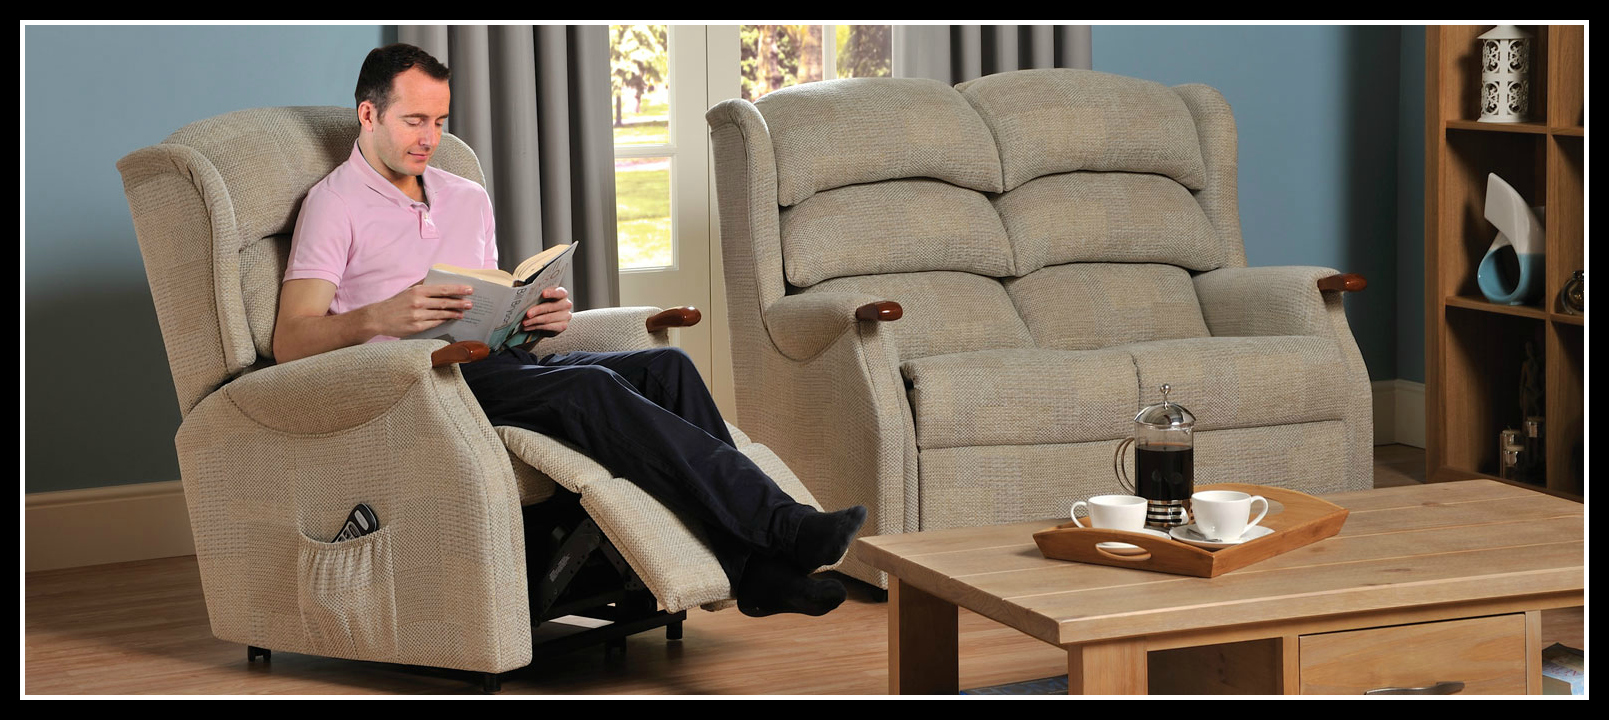 Choosing the right recliner for you